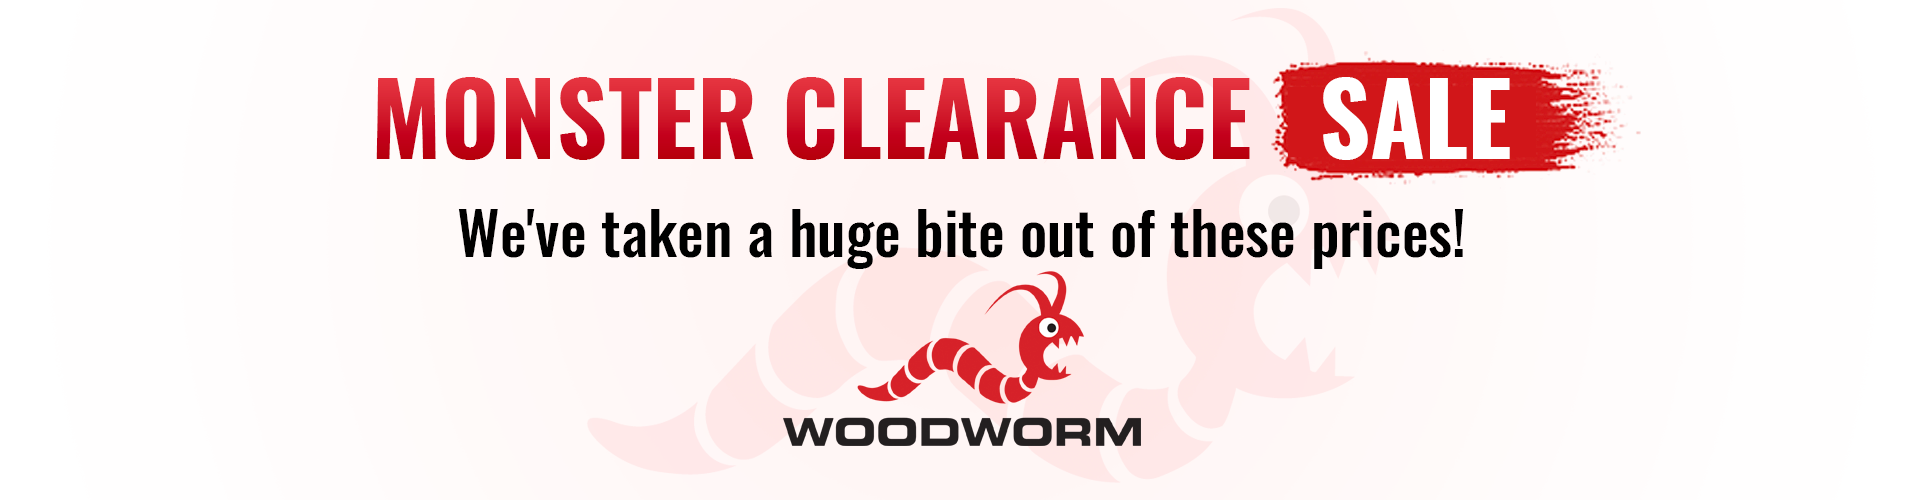 Woodworm Clearance Sale Now On